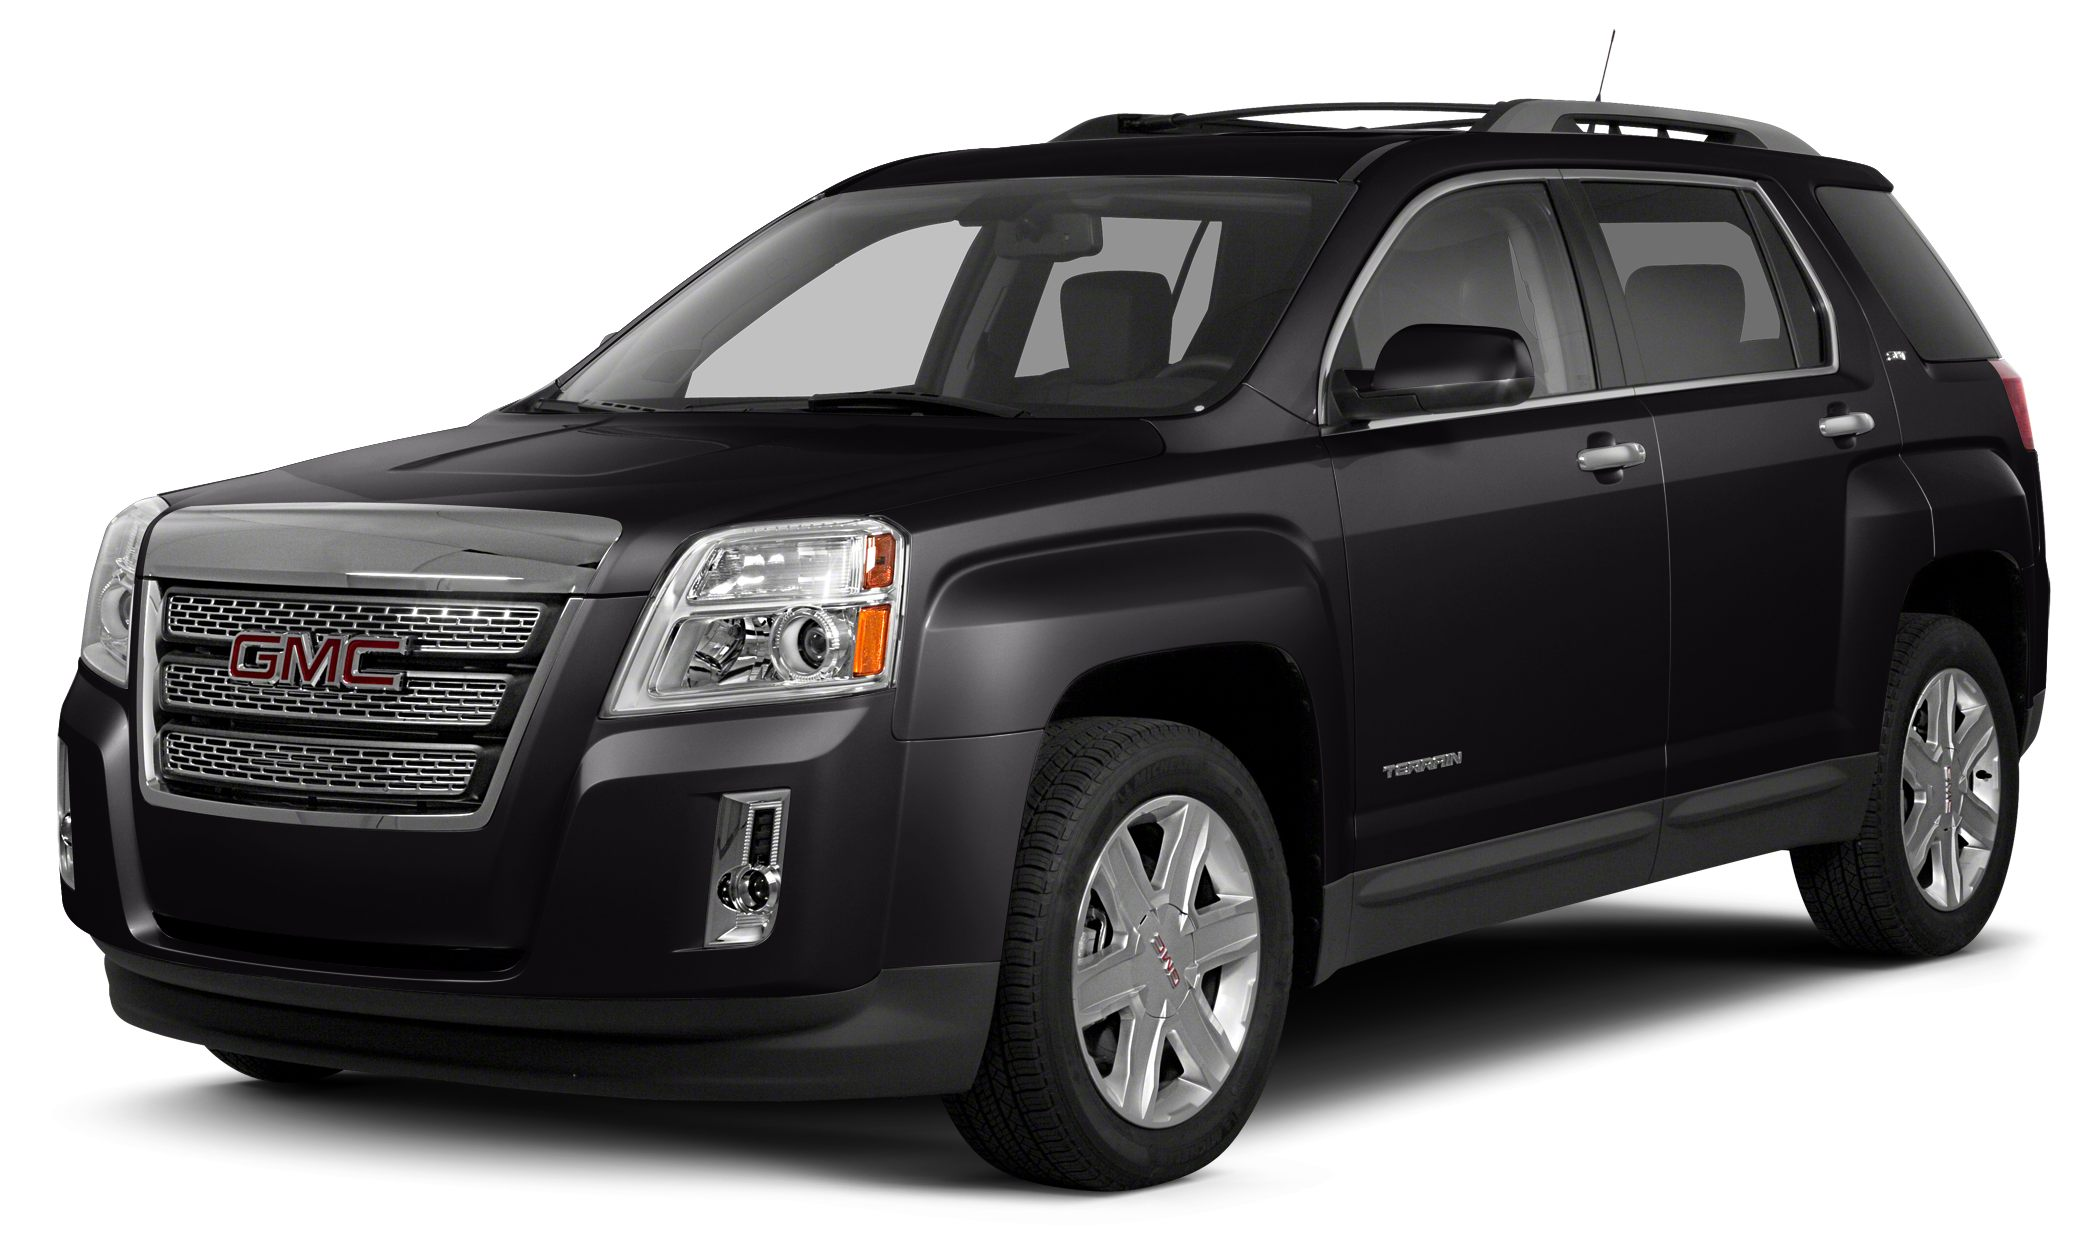 2013 GMC Terrain SLE-2 SLE trim Excellent Condition EPA 29 MPG Hwy20 MPG City 1000 below Ke